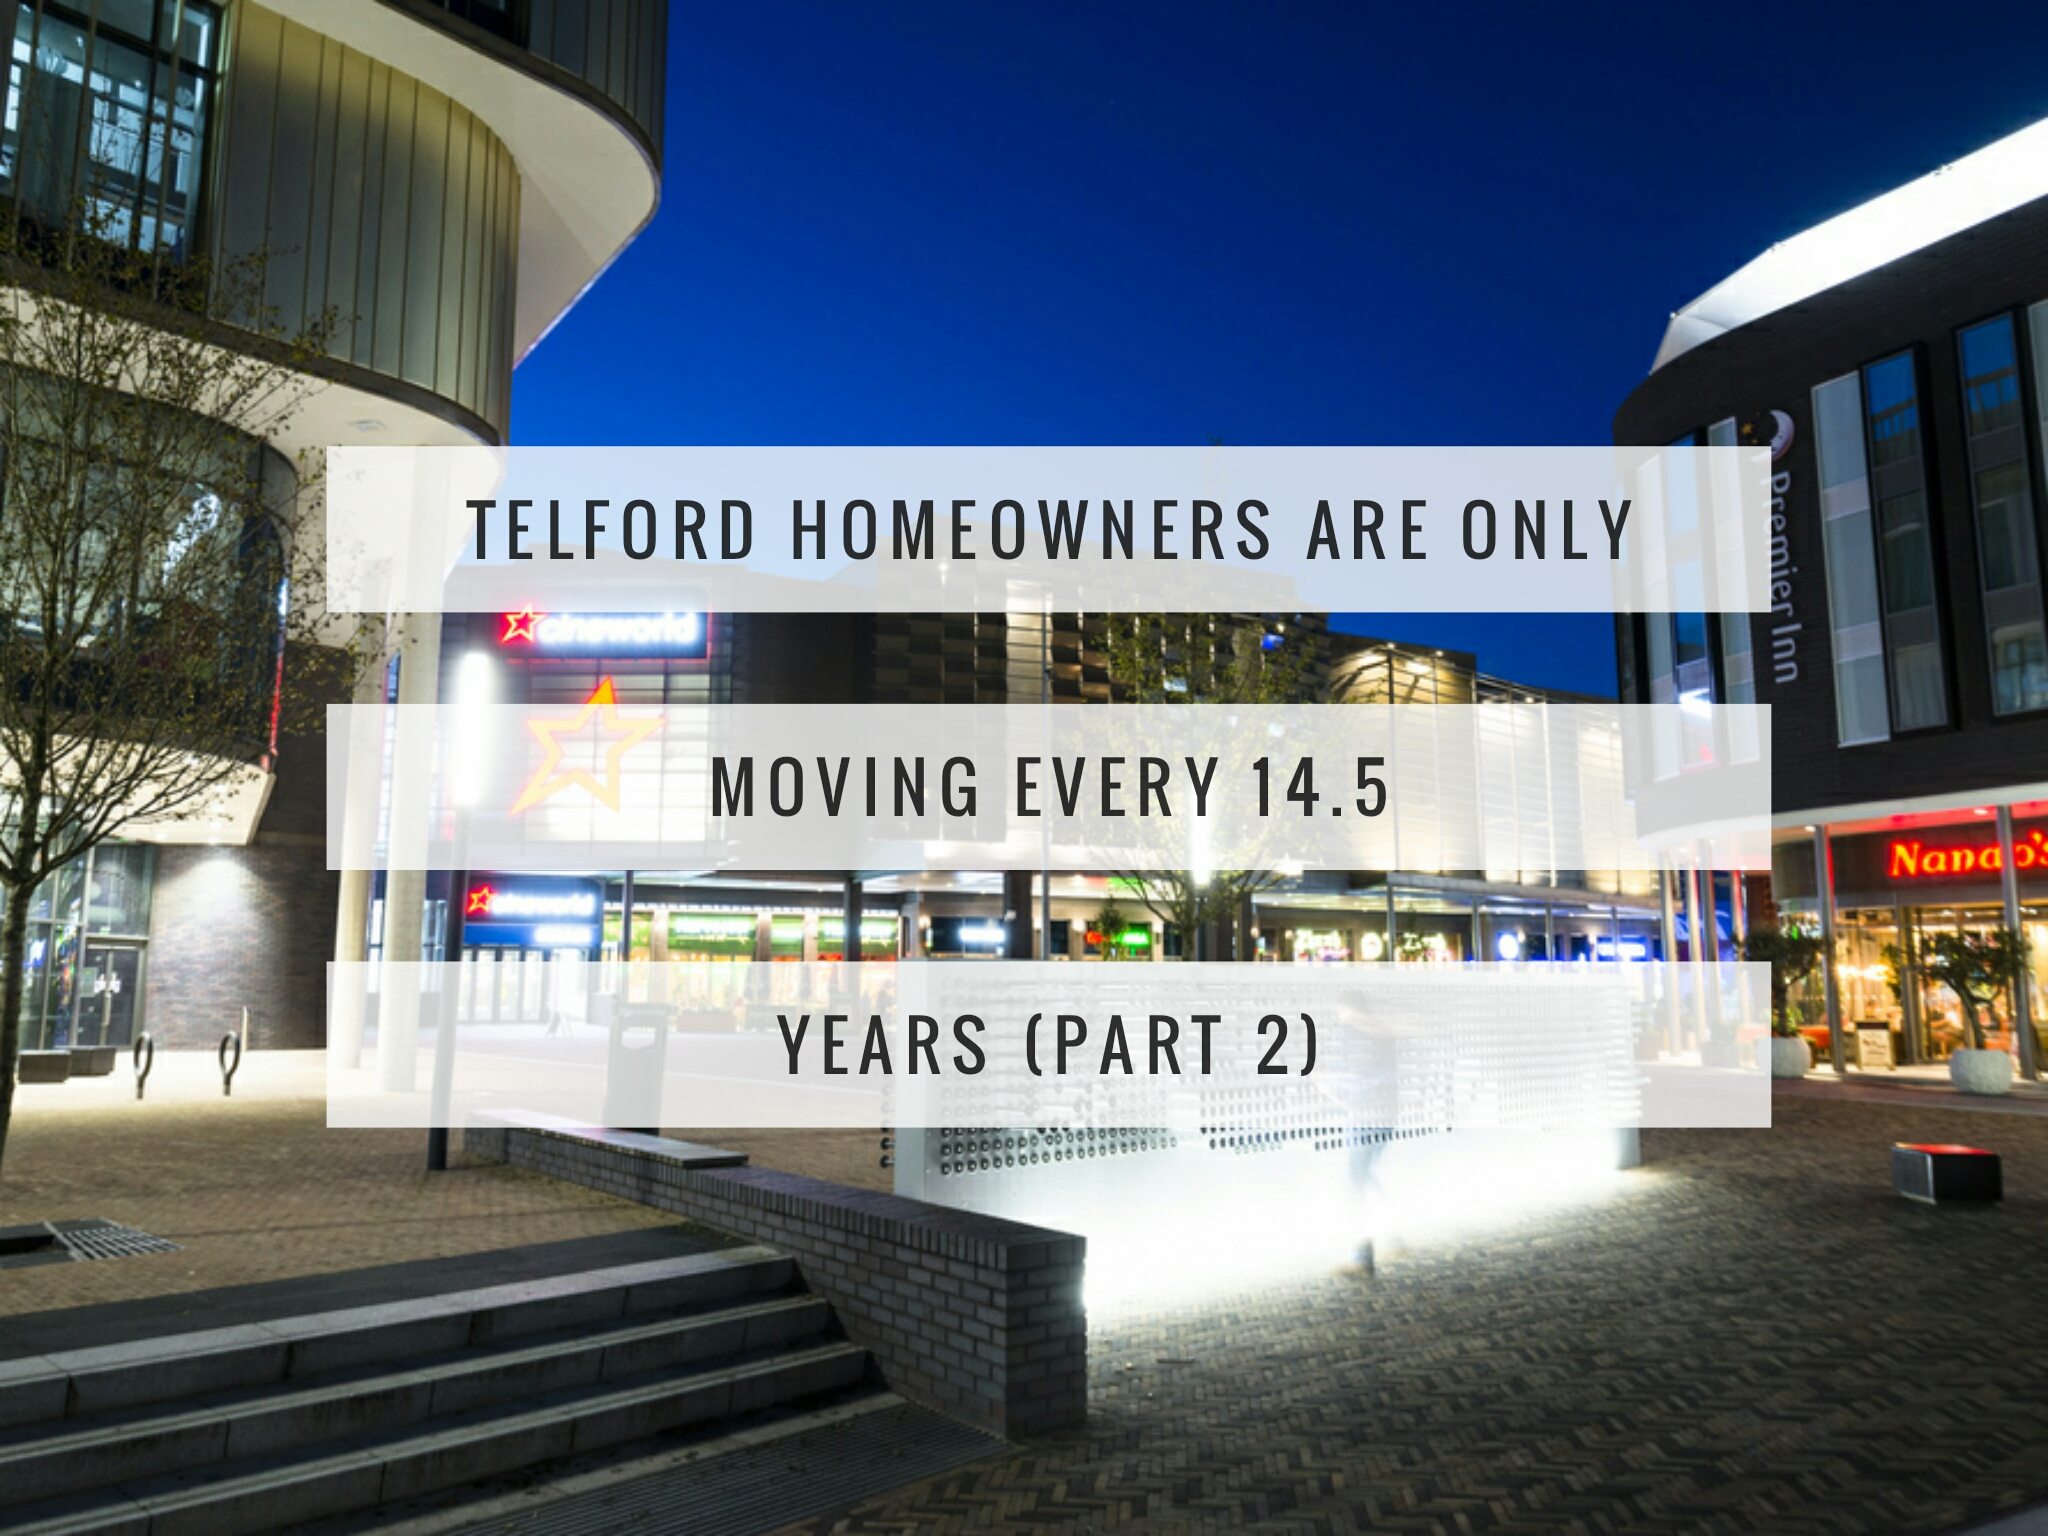 Telford Homeowners Are Only Moving Every 14.5 Years (Part 2)